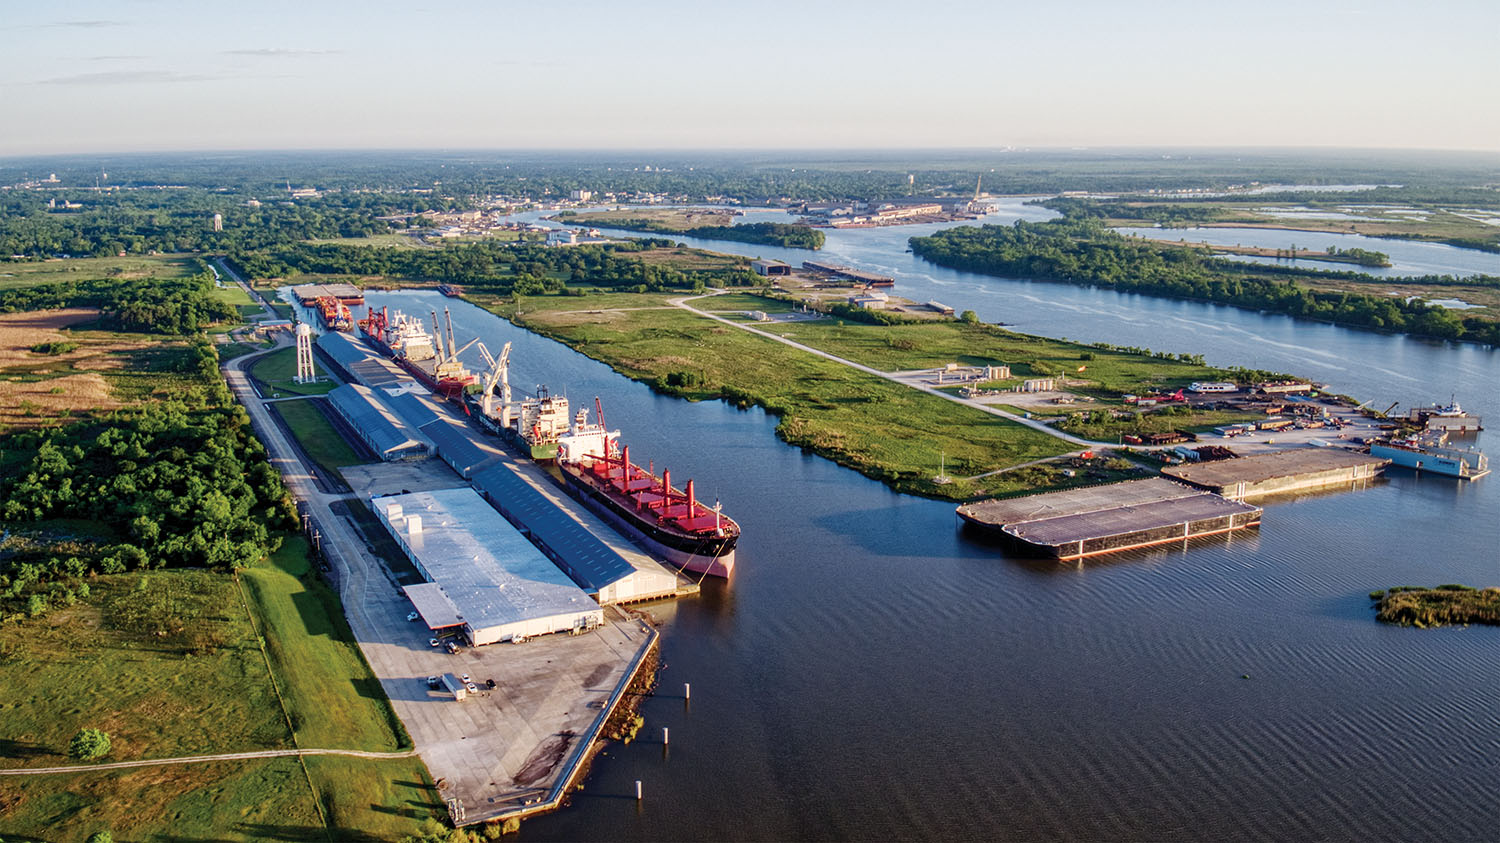 An aerial of the Port of Orange, including both moored cargo vessels and a view of greenfield space available for development. (Photo courtesy of Port of Orange)